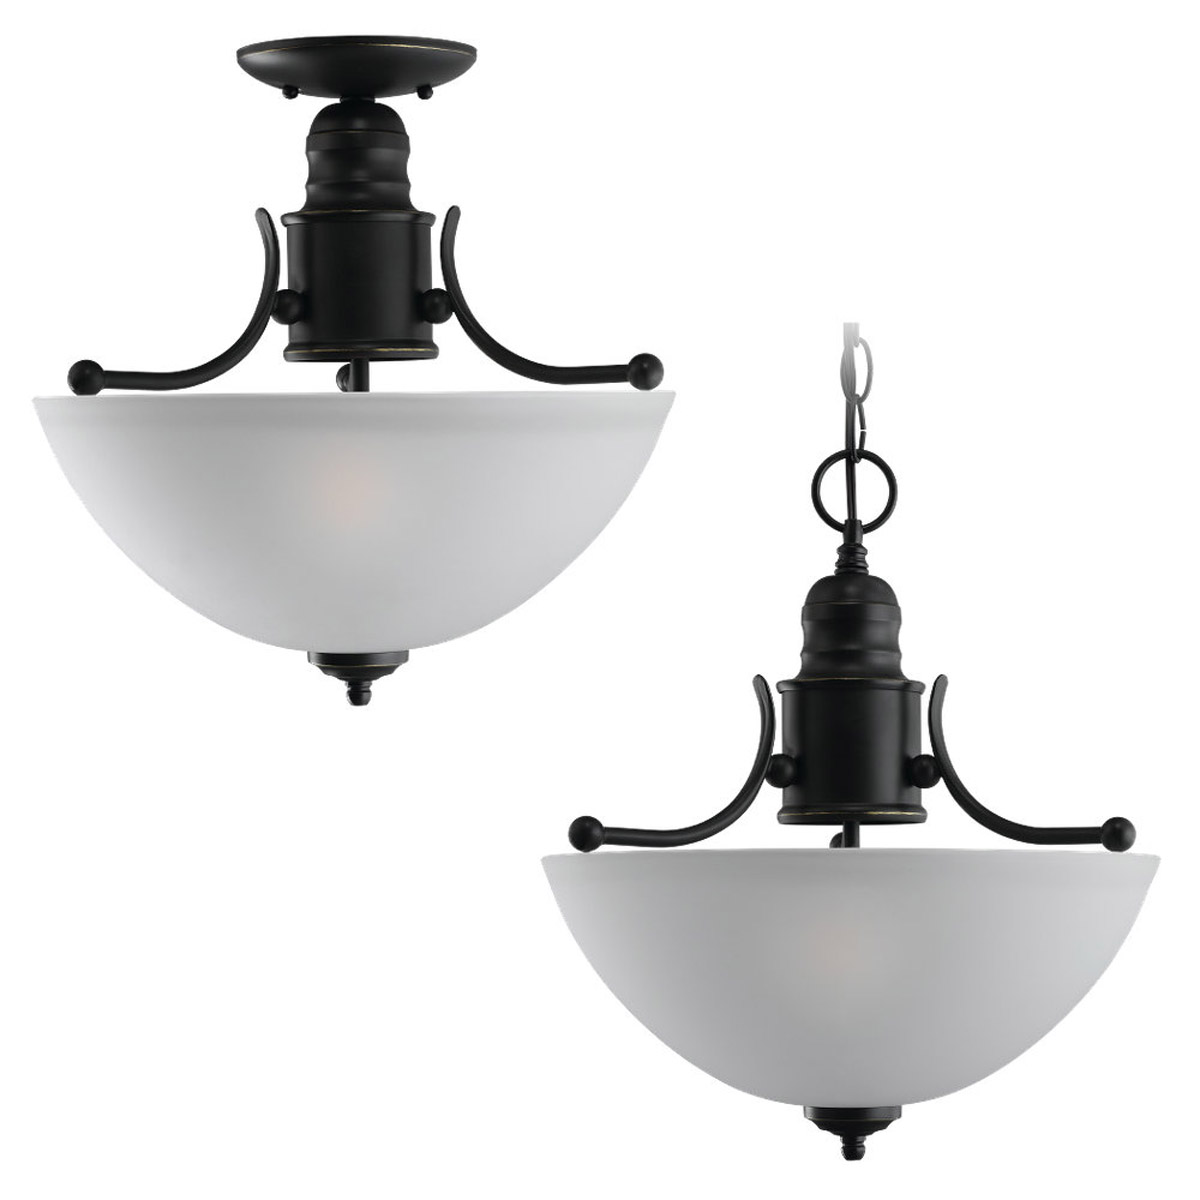 Sea Gull Lighting Linwood 2 Light Flush Mount in Heirloom Bronze 77225-782